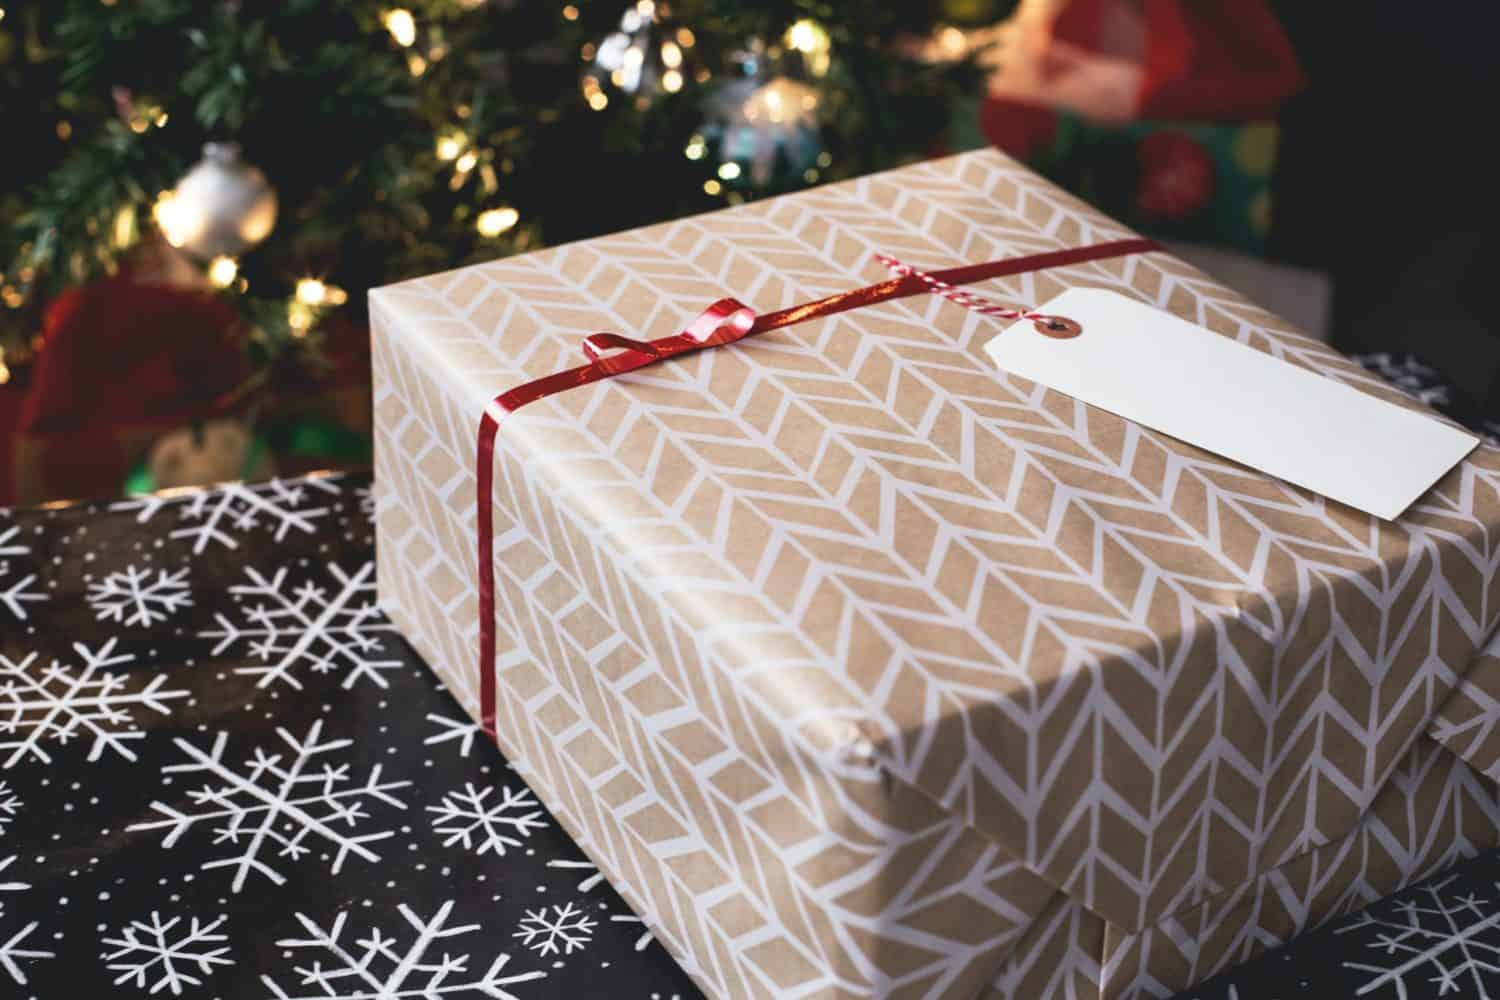 Top 10 Practical Christmas Gifts for Each Person on Your List